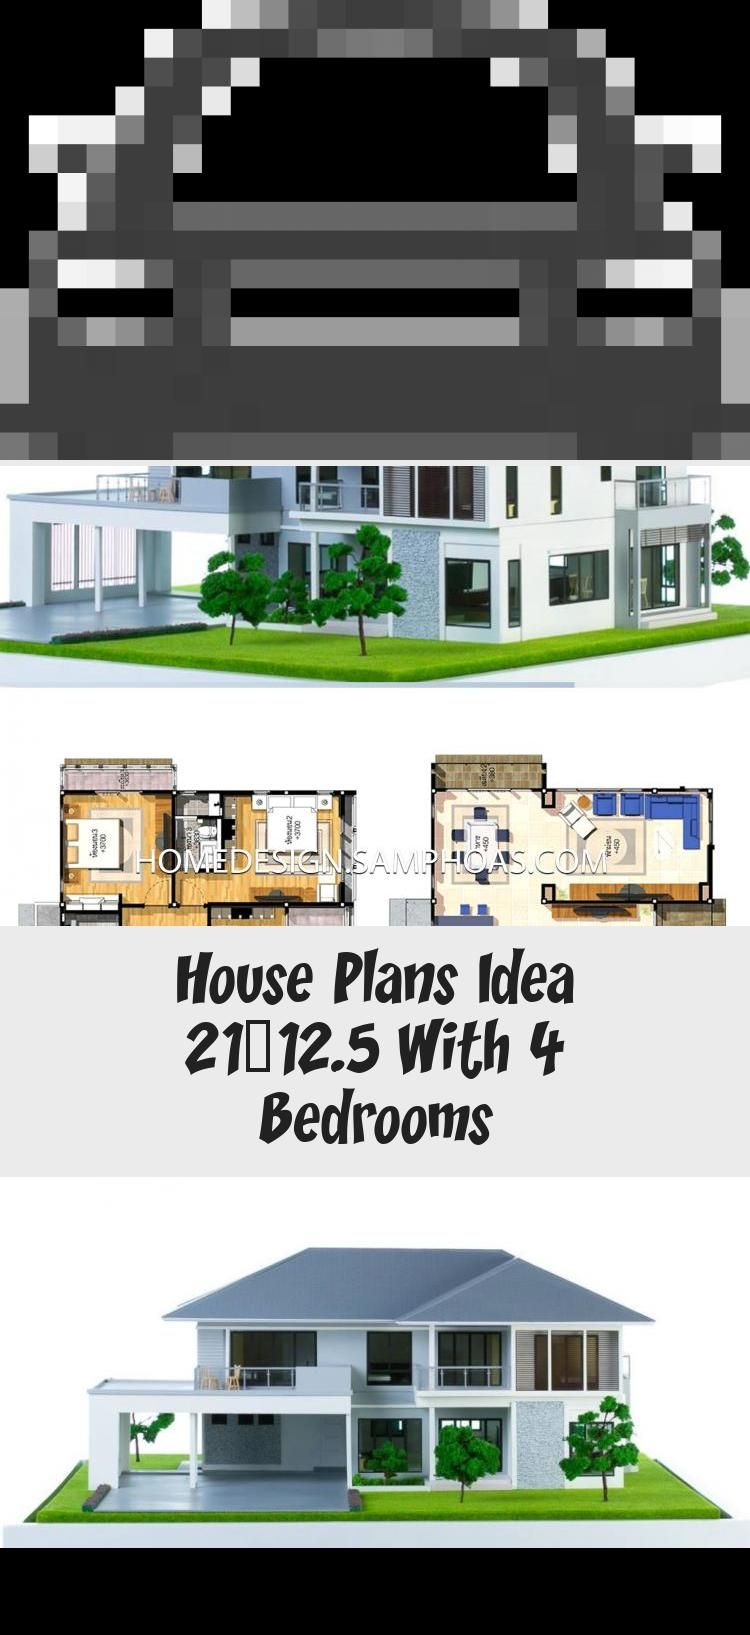 House Plans Idea 21x12 5 With 4 Bedrooms Home Ideassearch Floorplansgraphic Floorplanscoloring Colonialfloorplans Floorpla In 2020 House Plans House House Styles